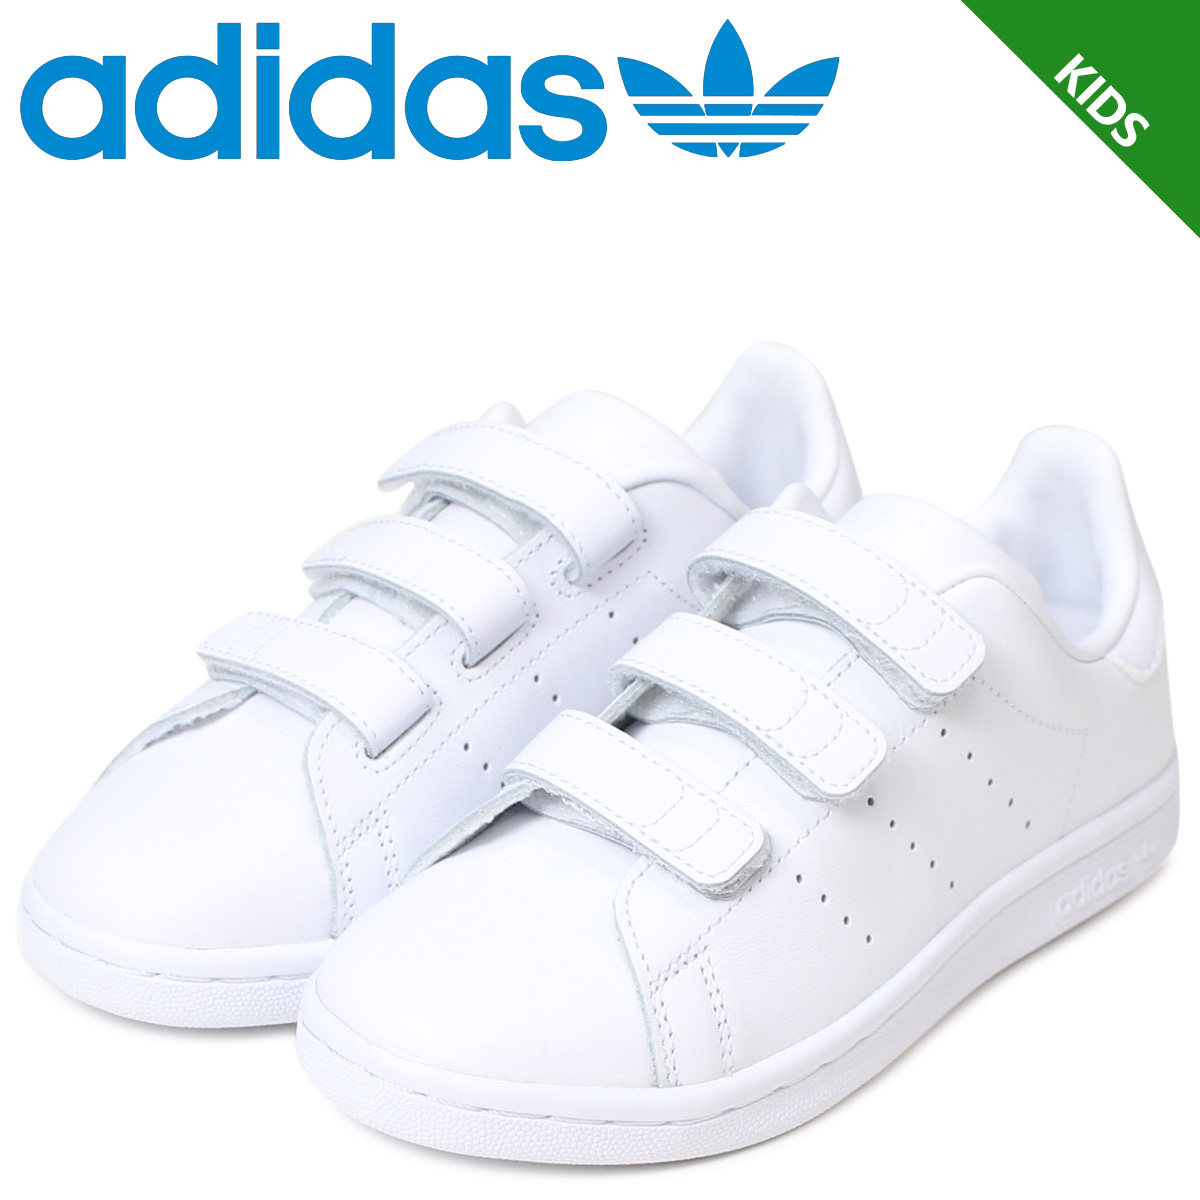 Kids Sneak Sneakers ShopAdidas Smith Originals Stan Online 8XwnOPkN0